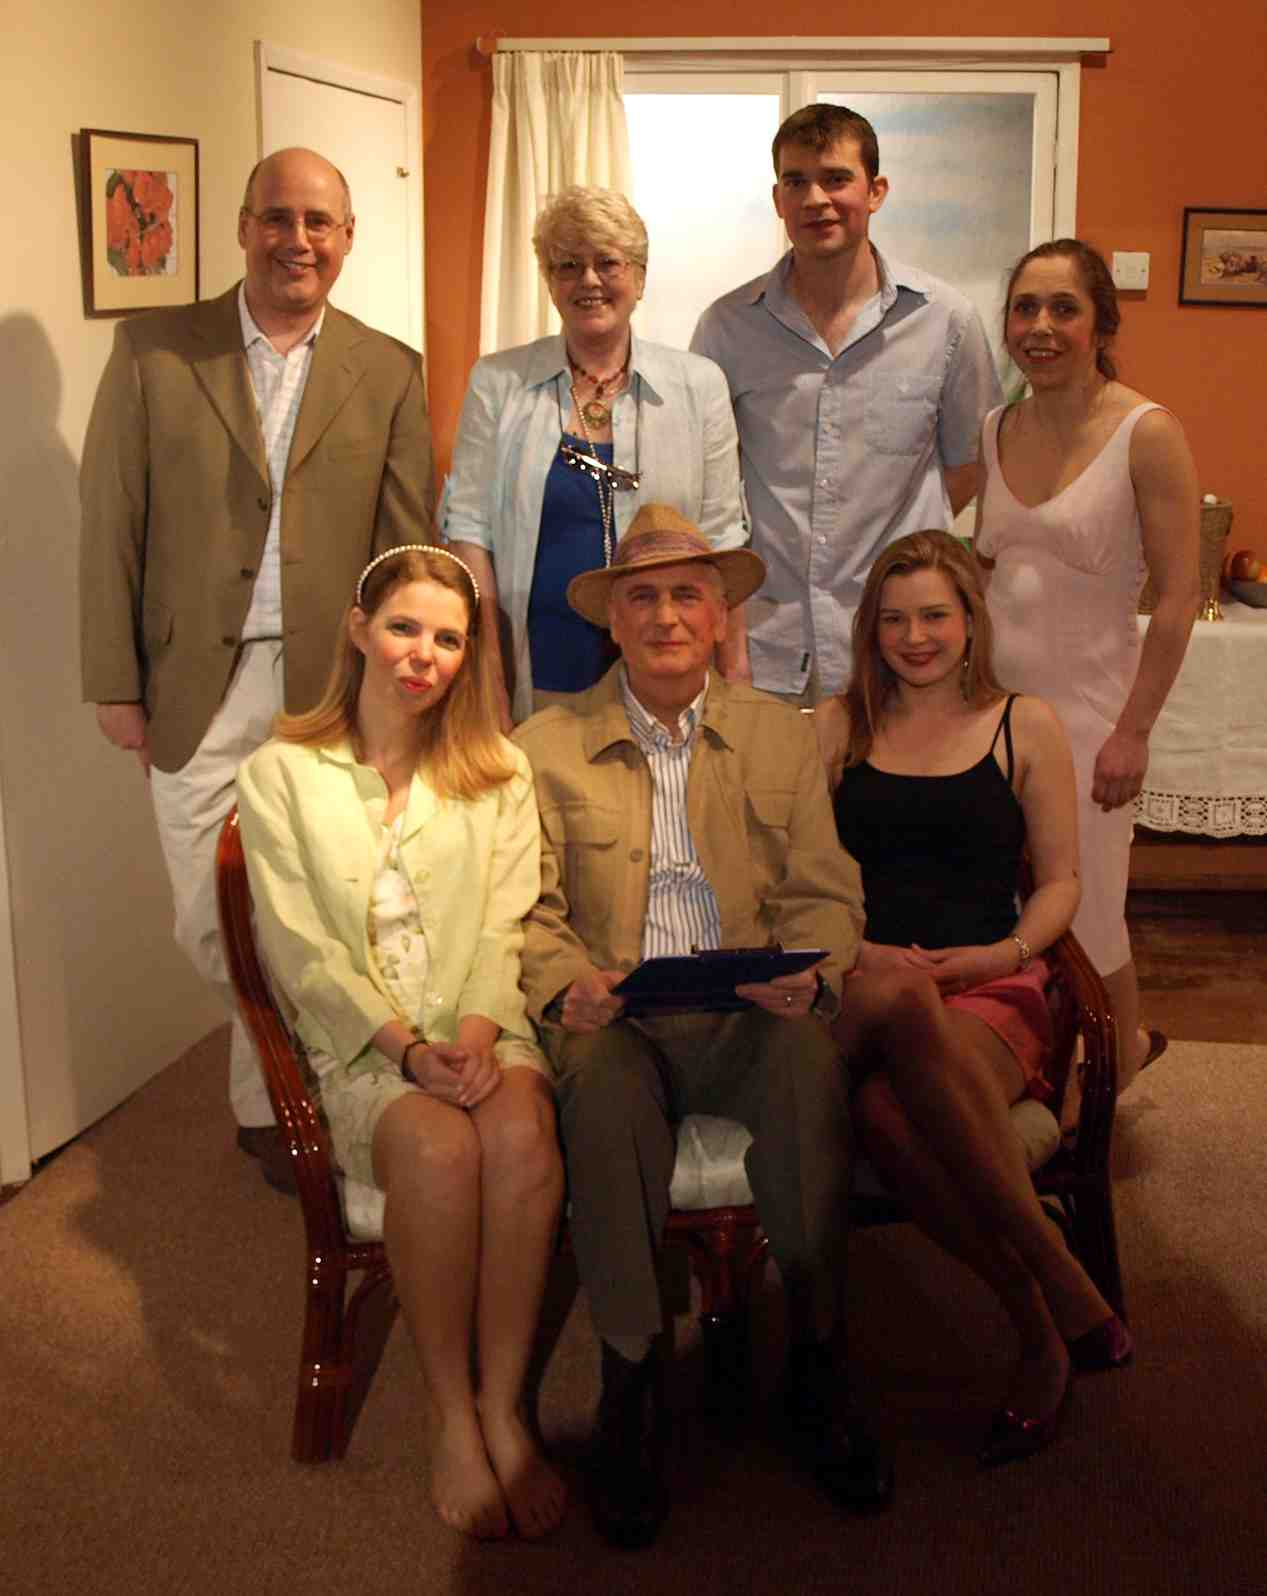 "Standing, left to right: Steve Nelson (""Perky""), Julie Greenwood (""Celia""), Jaimes Cooper (""Leslie""), Carol Rood (""Kit""). Seated, left to right: Sian Cole (""Mary""), Stewart Hiorns (""Chitto""), Laura Sims (""Eve"")."